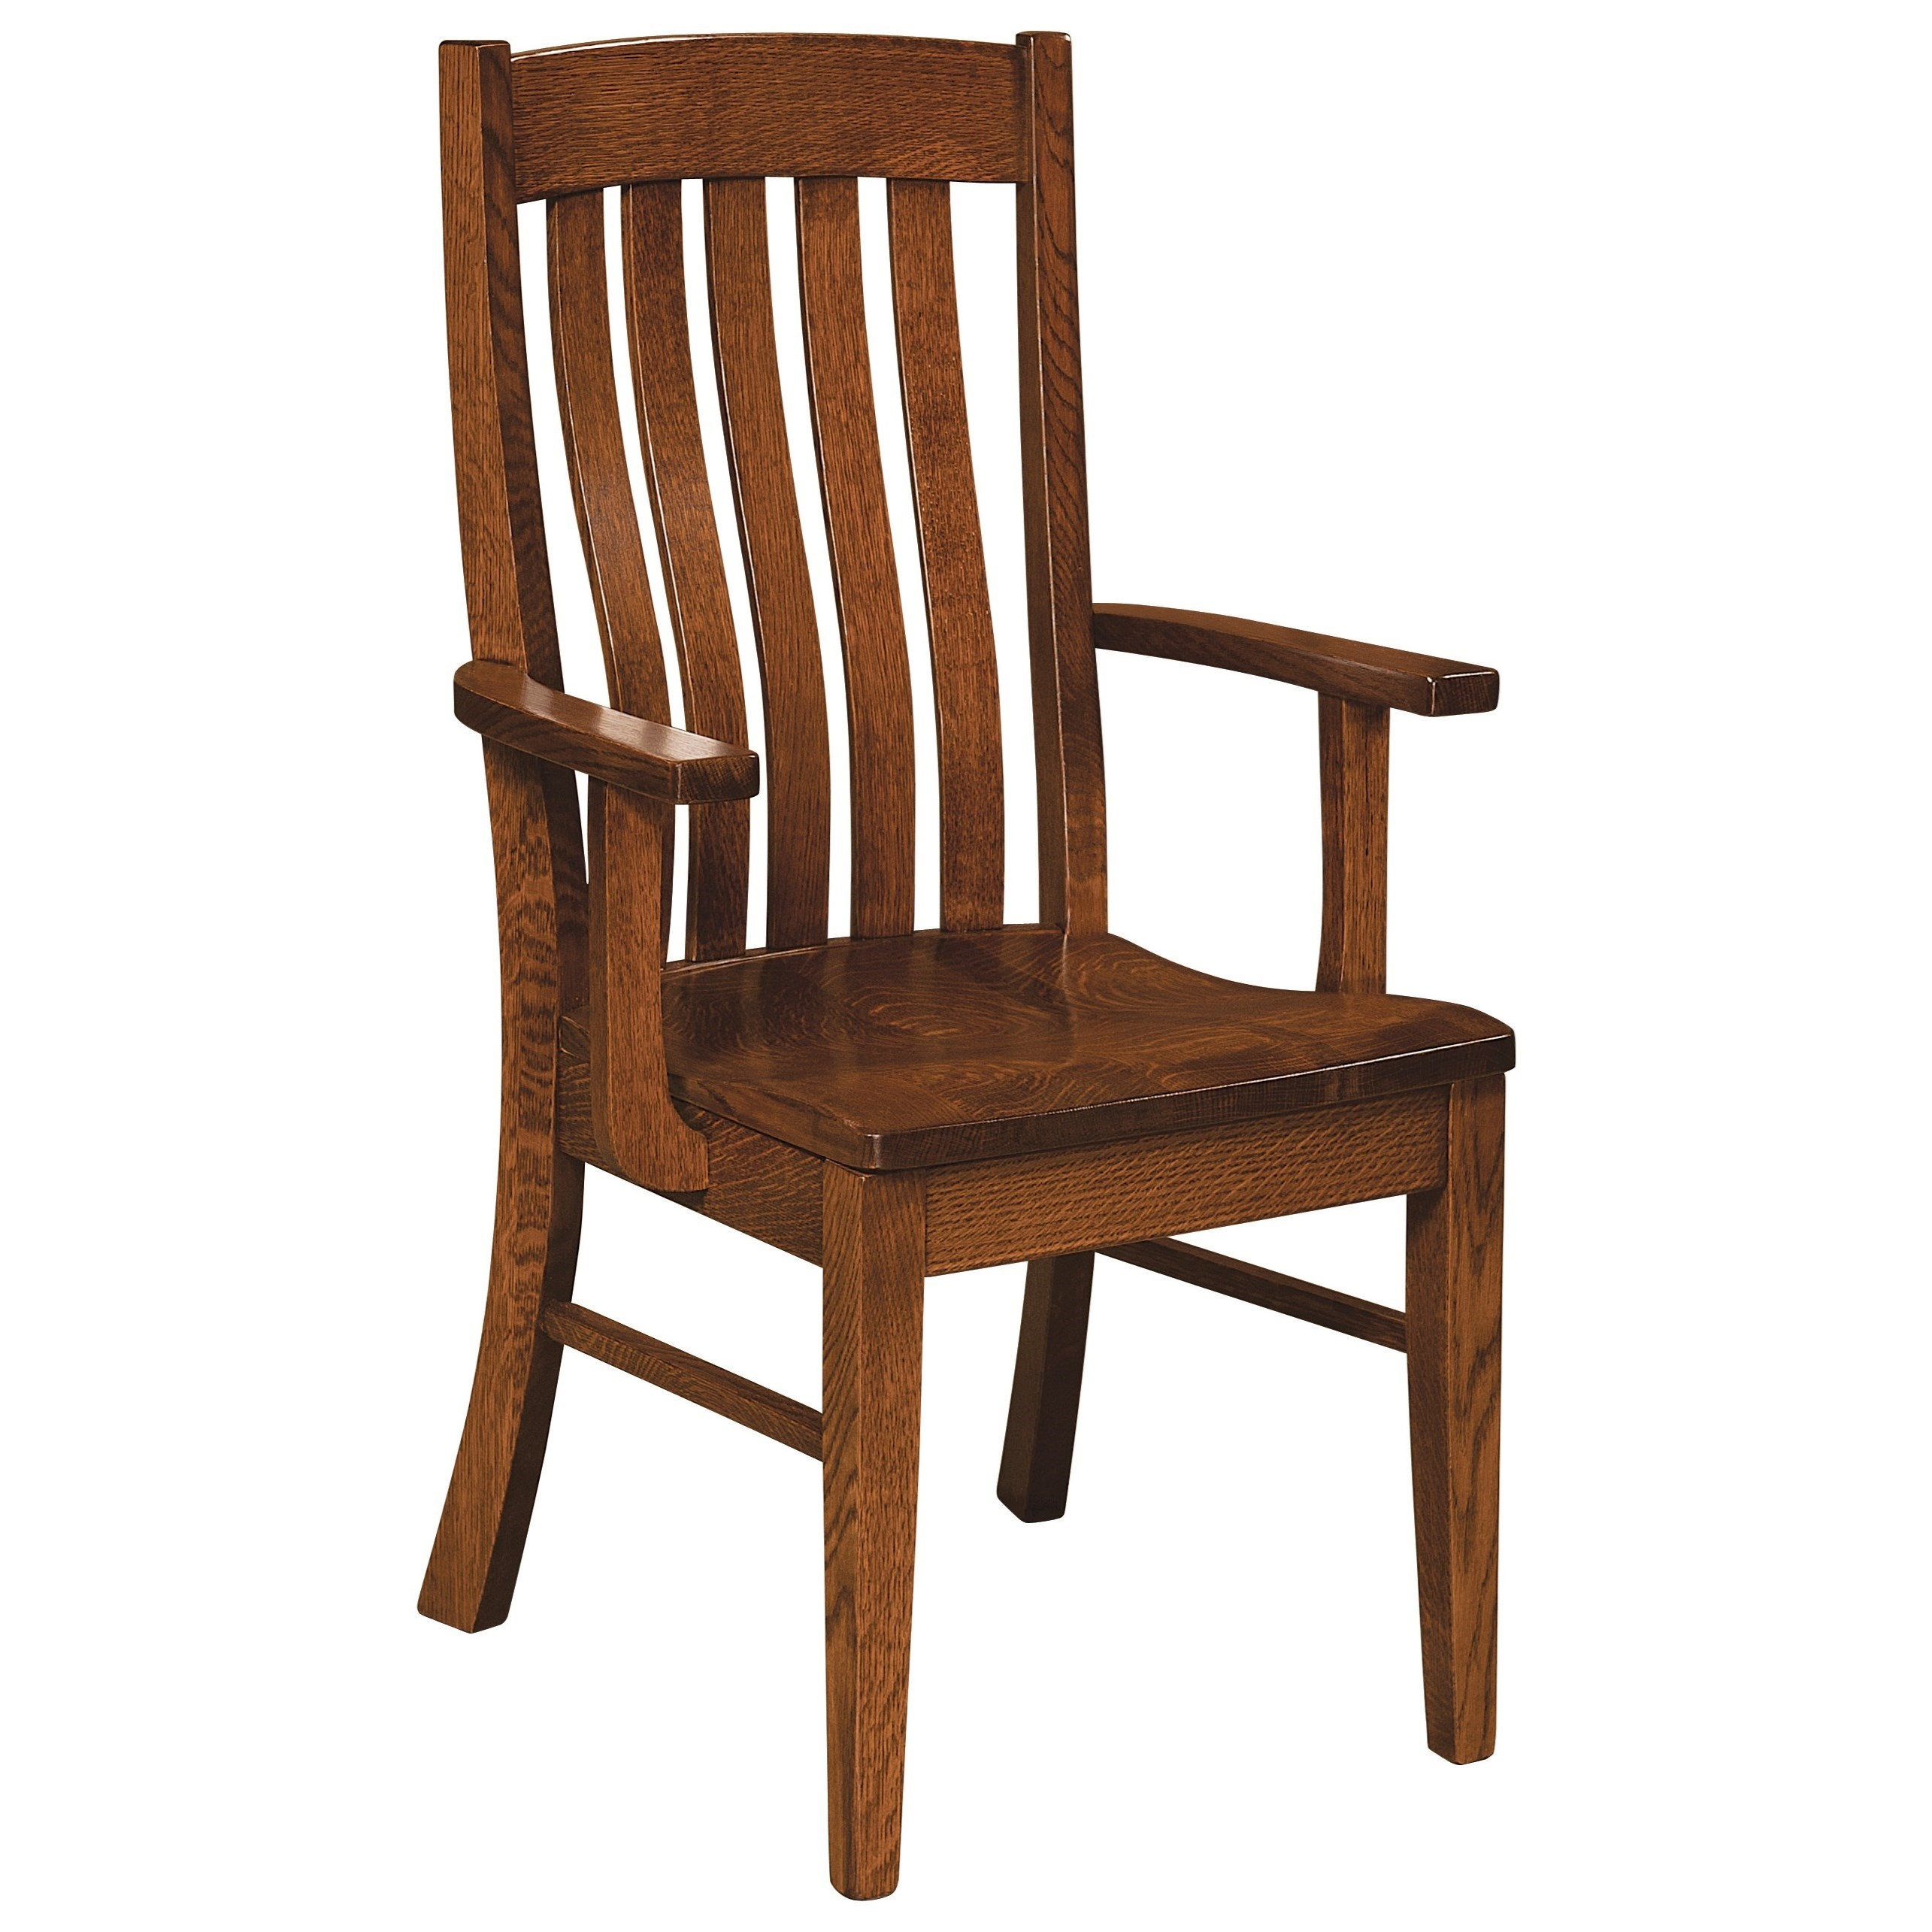 Houghton Arm Chair - Leather Seat by F&N Woodworking at Mueller Furniture